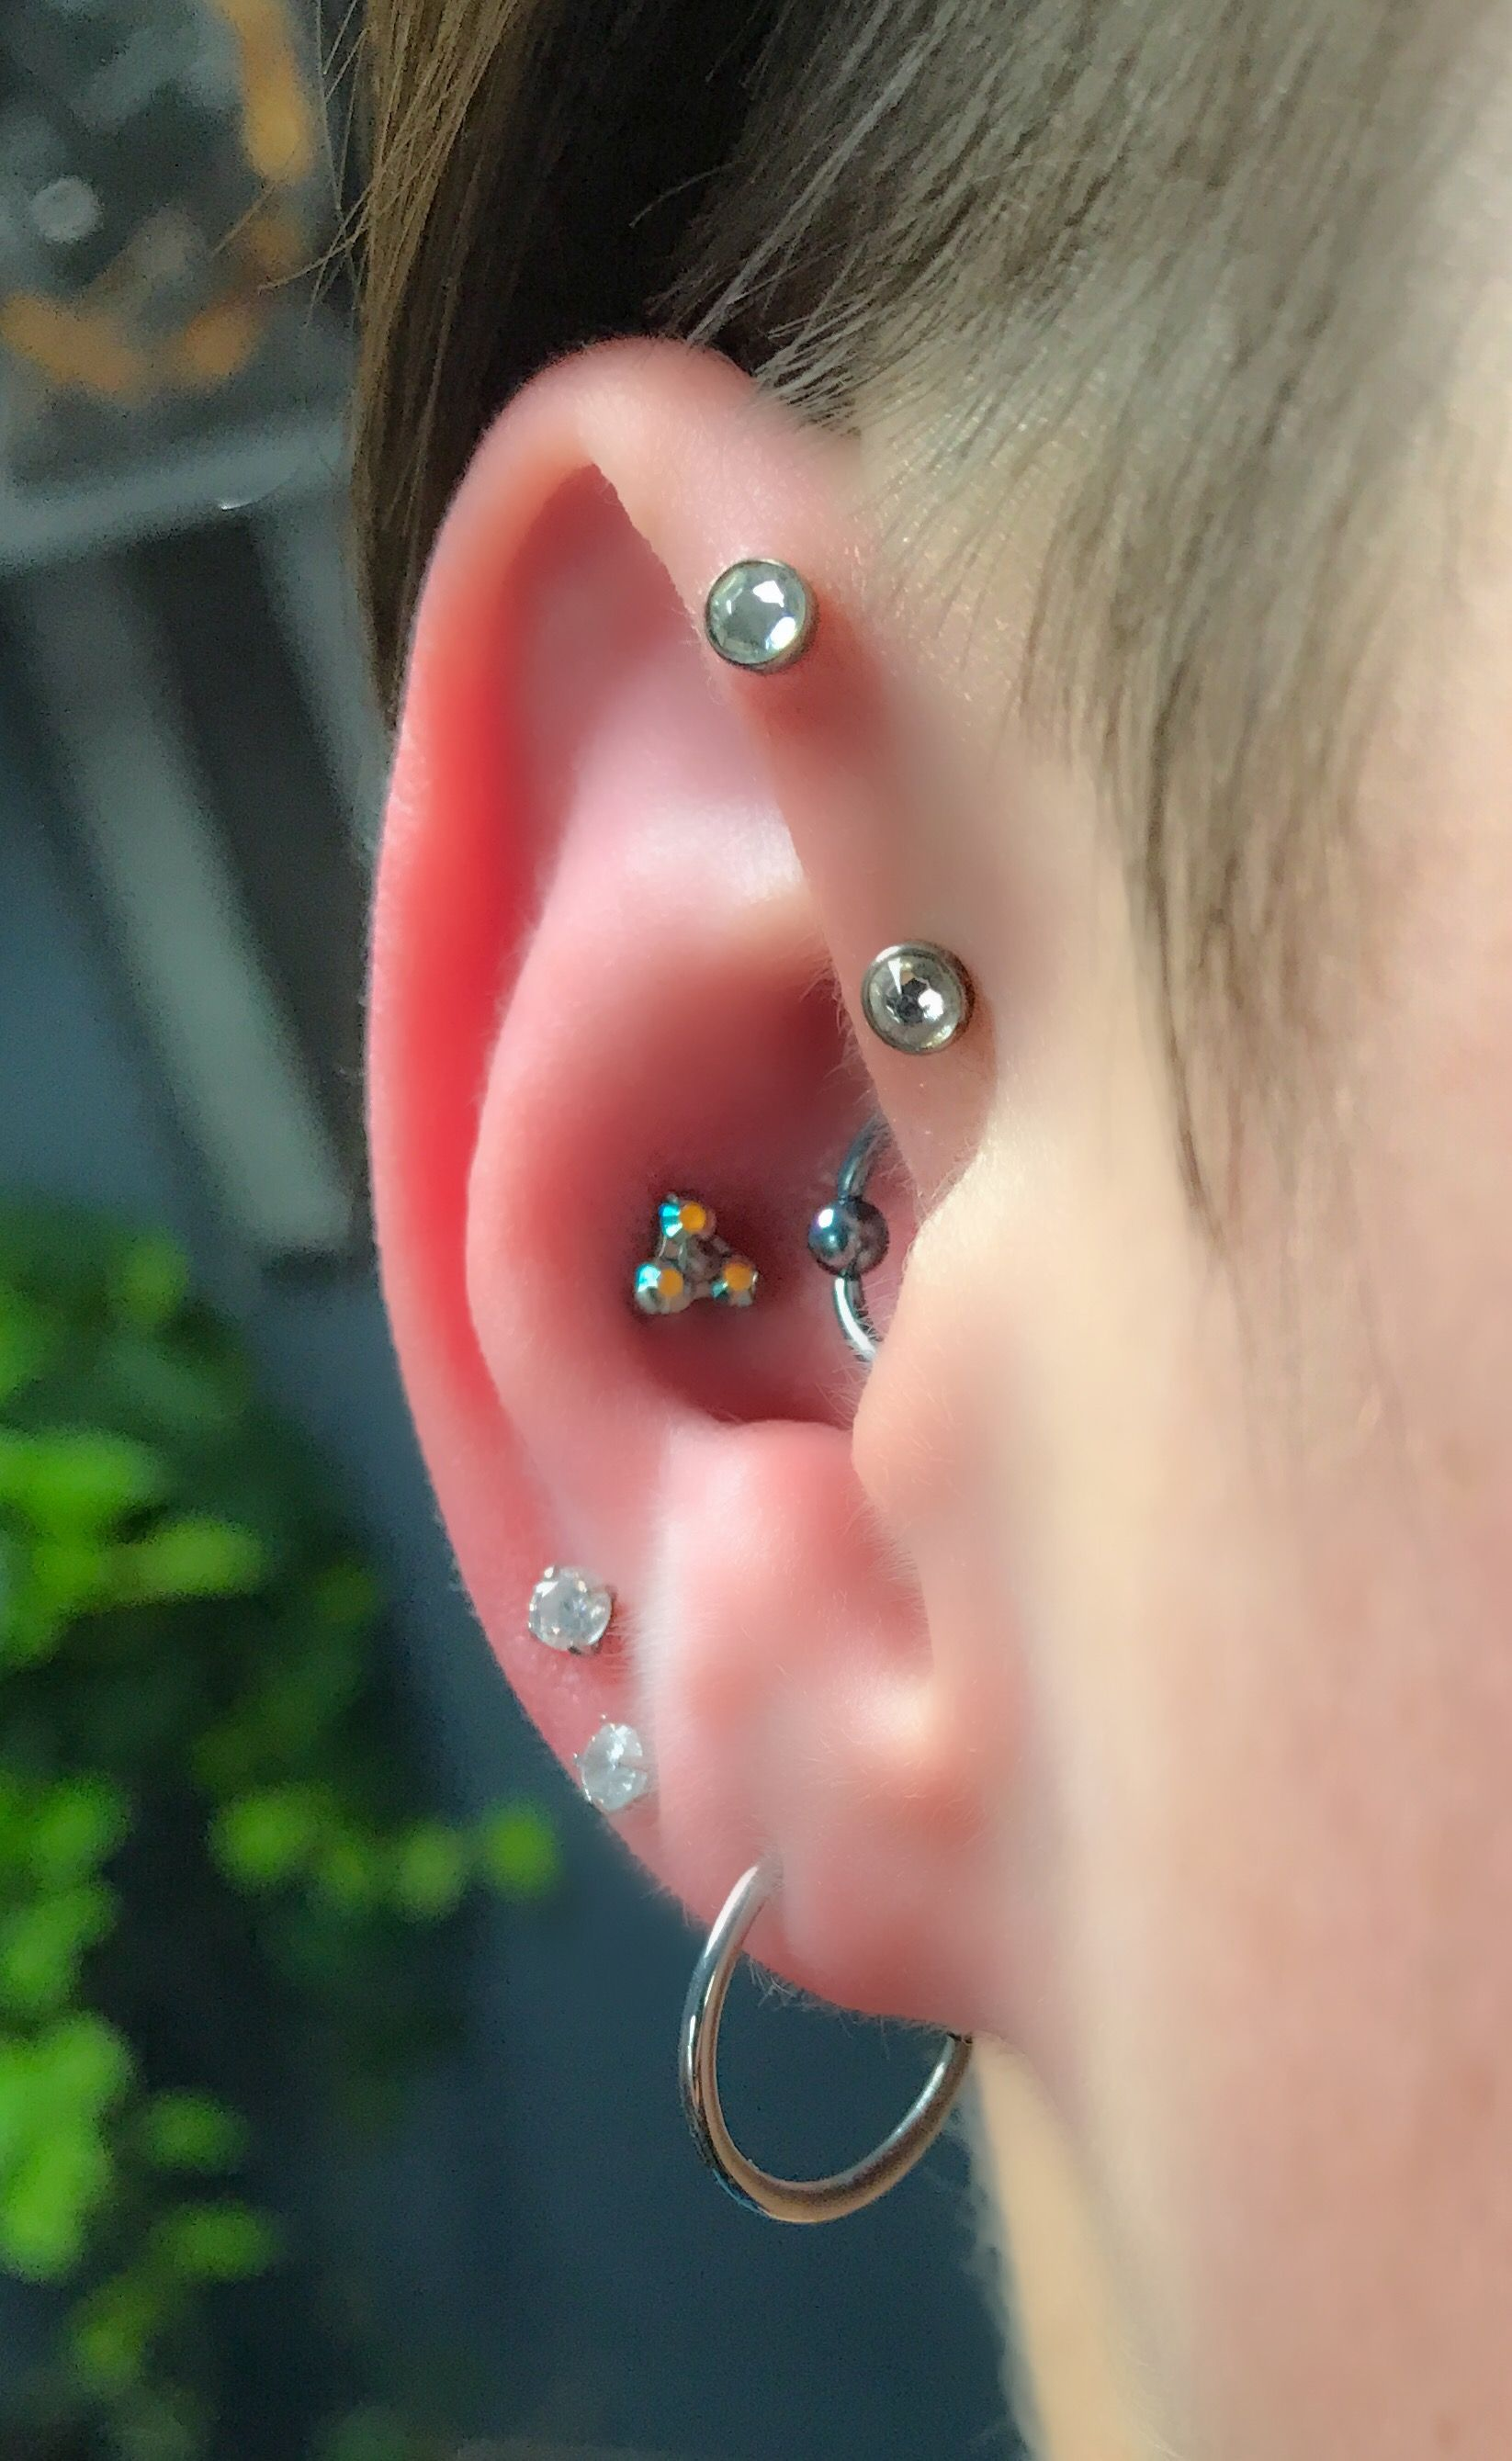 Nose piercing growing over  Pin by Keybold on Ear  Pinterest  Piercings Ear piercing and Piercing